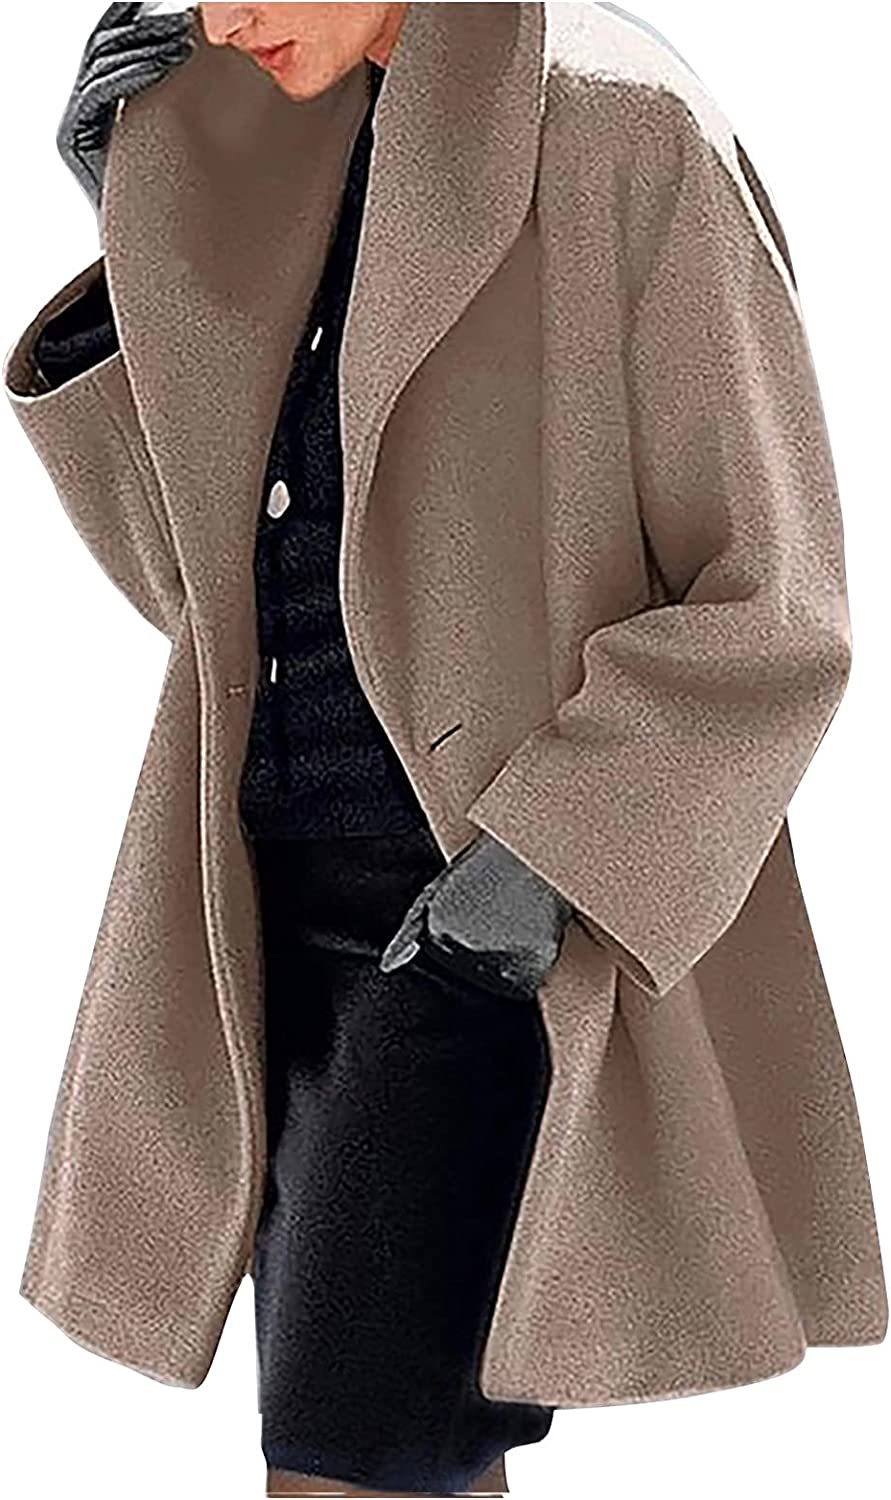 Womens Basic Winter Jacket Coat Warm Slim Trench Ladies Loose Lapel Button Up Wool Blend Mid-Long Overcoat Outwear